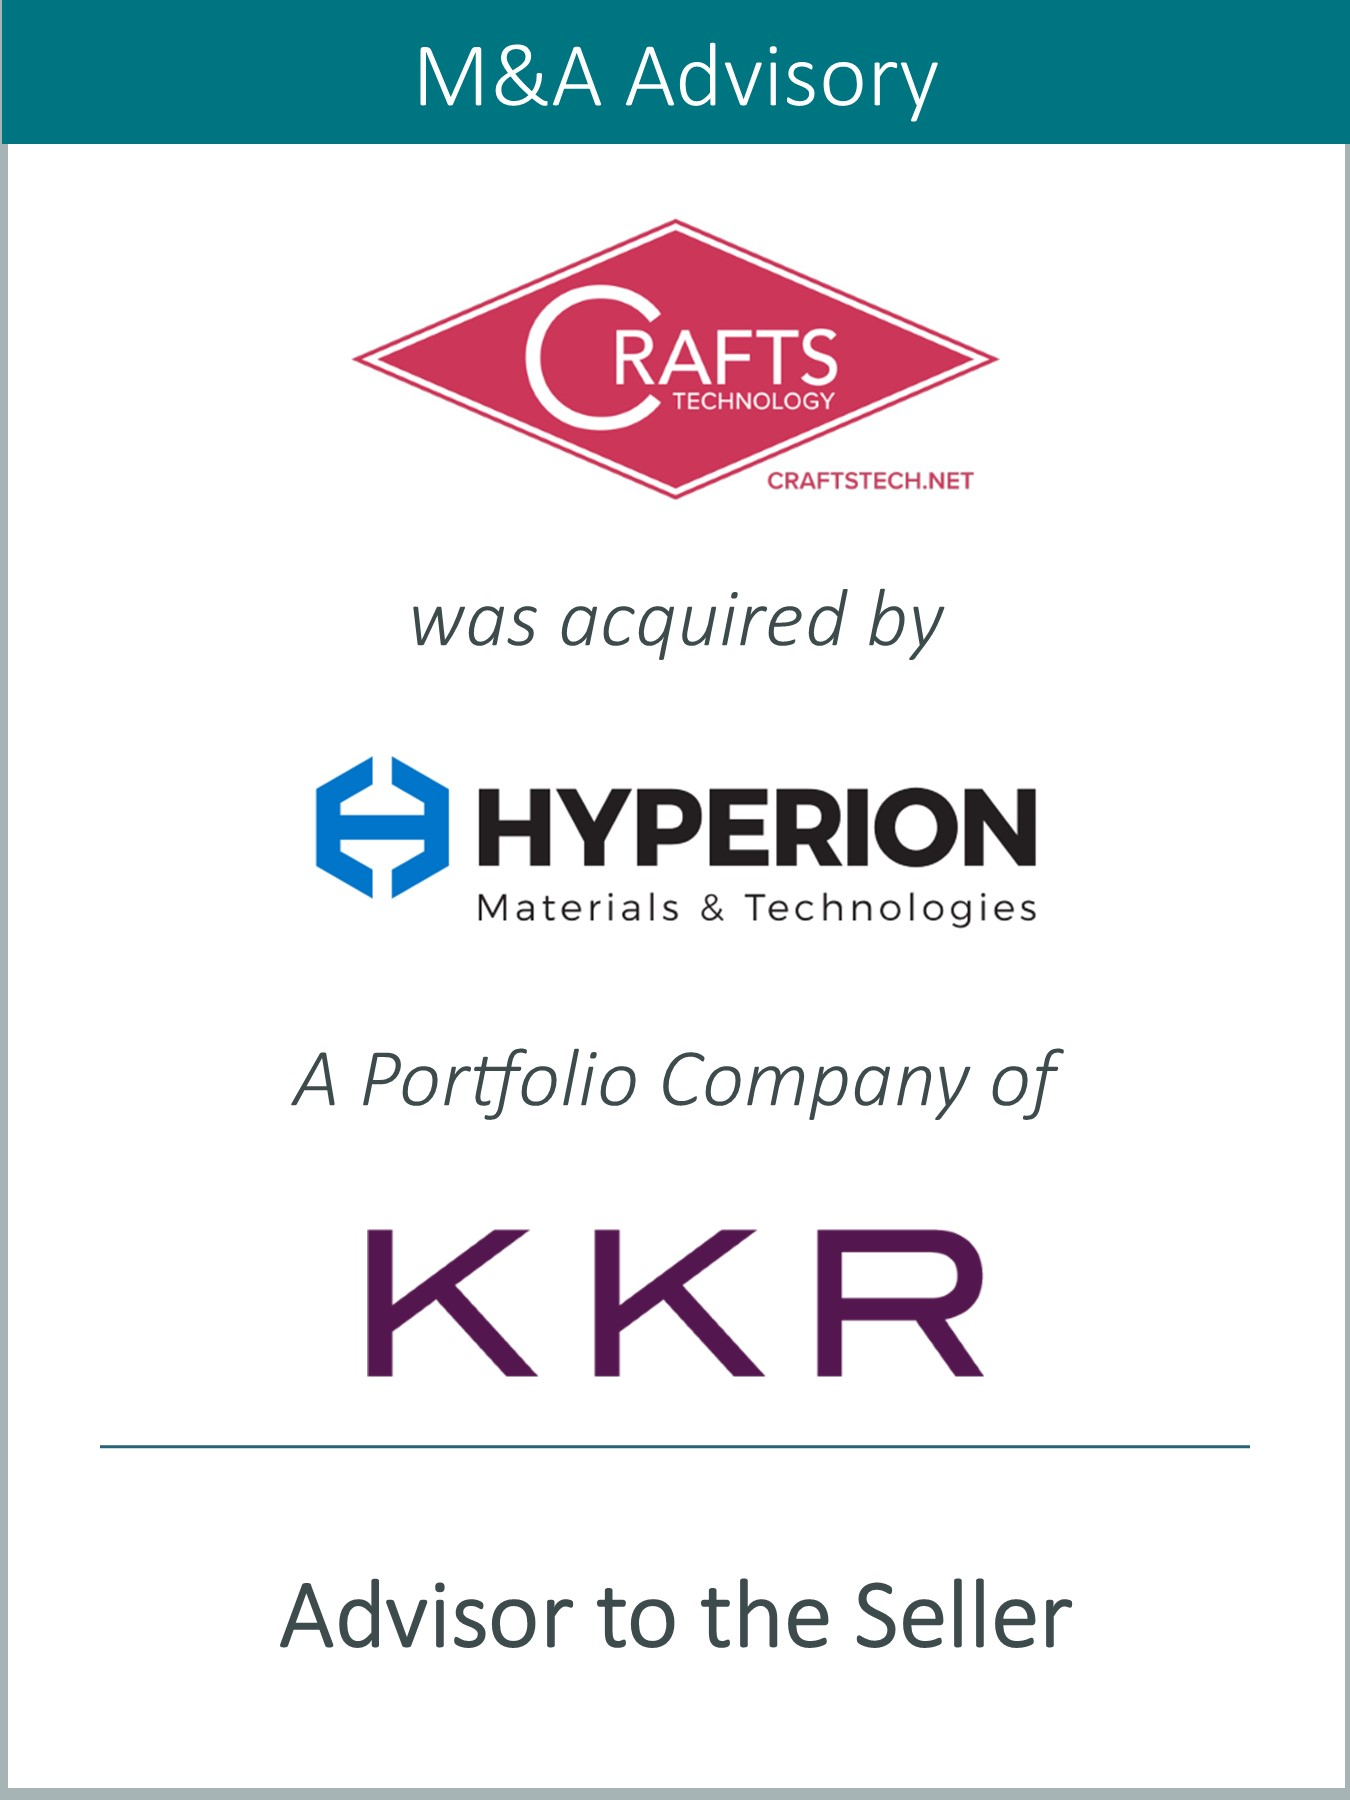 Prairie Represents Crafts Technology in its Sale to Hyperion Materials & Technologies